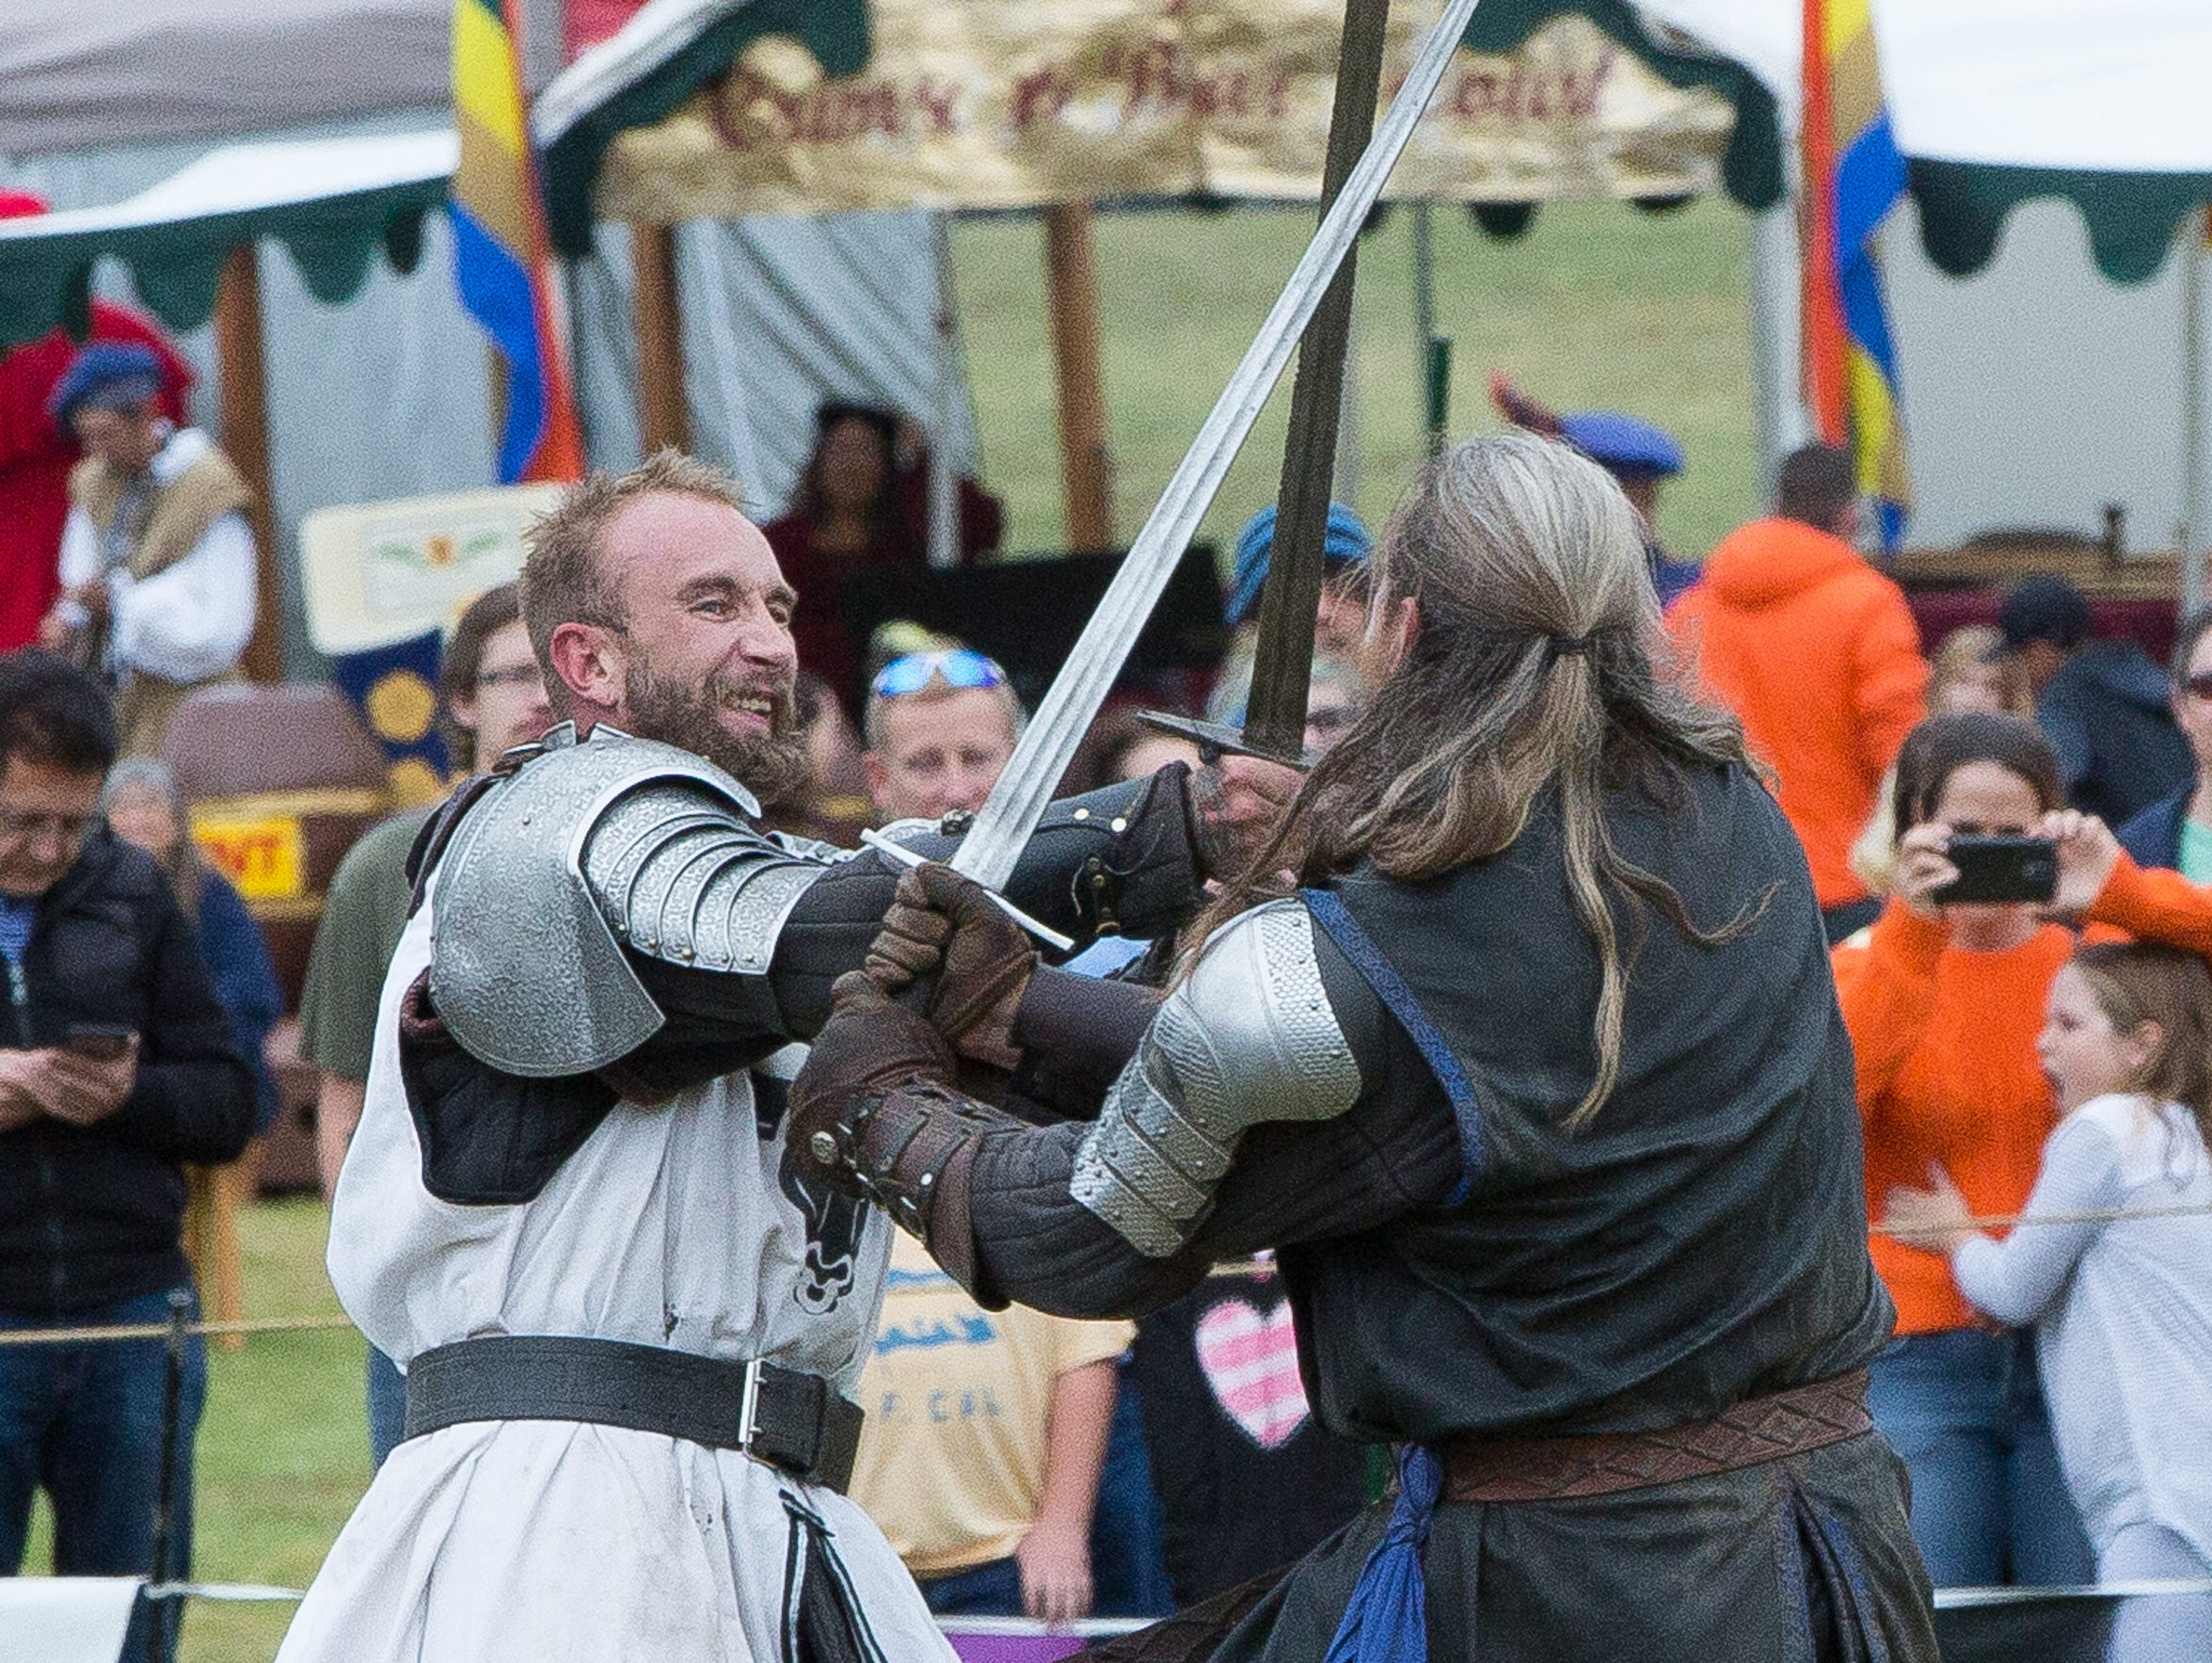 Sir Brawley Warbourne, left and Sir Ronan sword fight after a jousting tournament, during the Renaissance ArtsFaire, at Young Park Nov. 5, 2016.